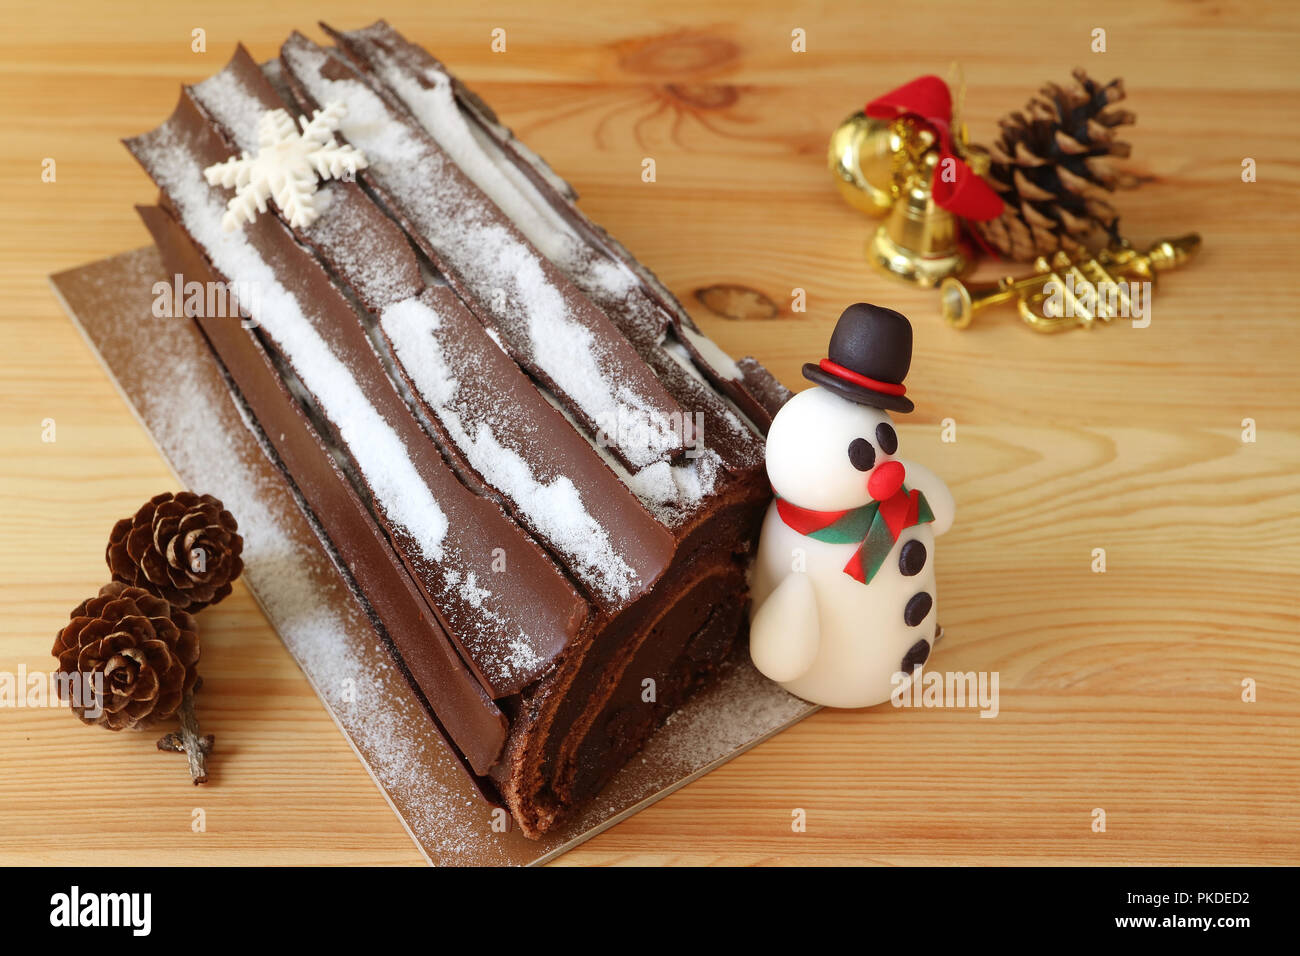 Buche de Noel or Chocolate Yule Log Cake with a Cute Snowman Marzipan and Dry Pine Cones, Christmas Ornament on Wooden Table Stock Photo